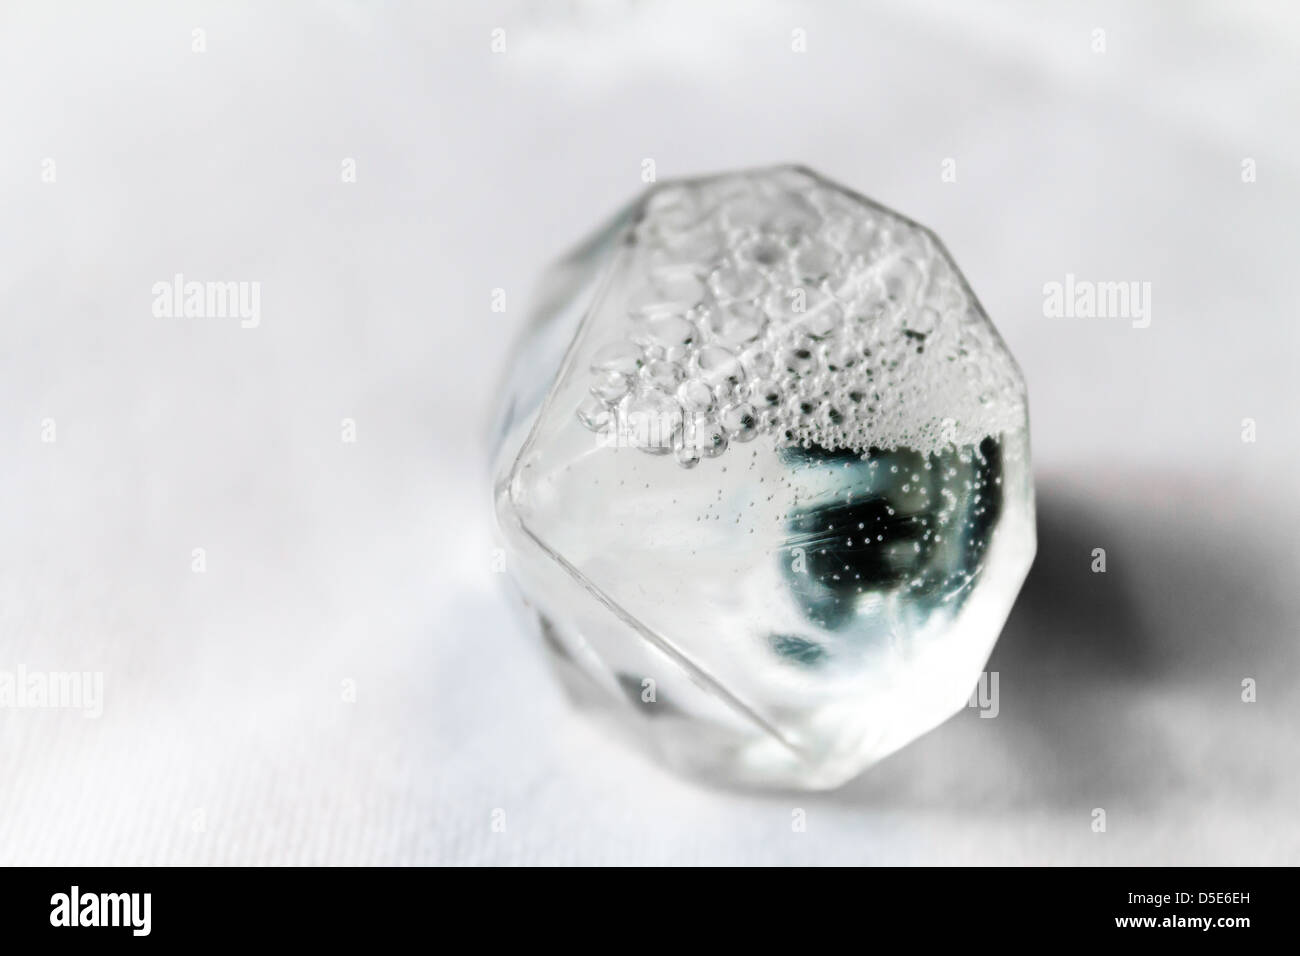 Bubble blowing liquid in a diamond shaped bottle. Often used at weddings for favours or at parties for adults with - Stock Image